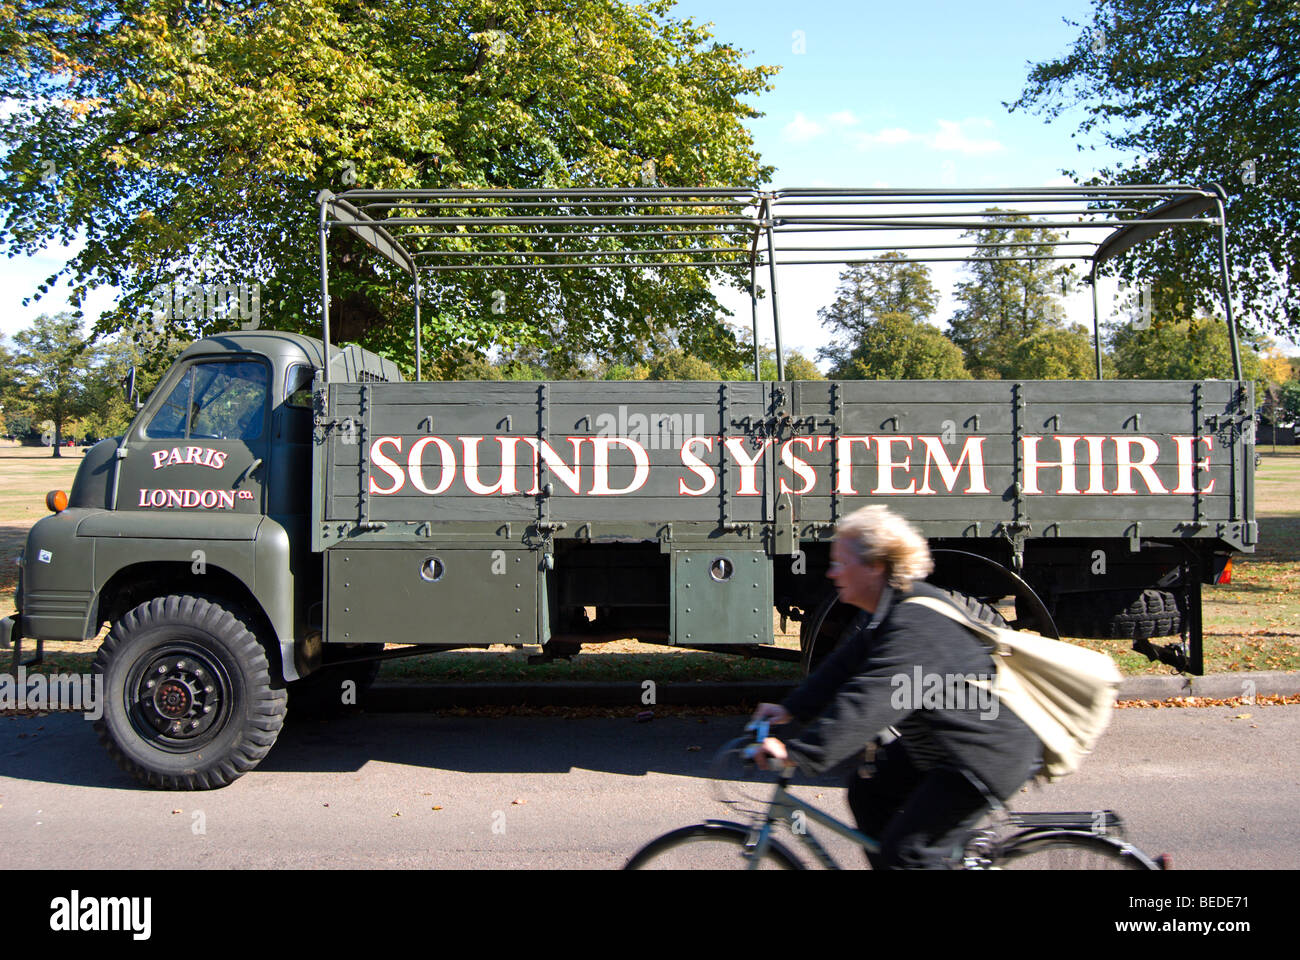 Truck Sound System >> Open Top Military Style Truck With Sound System Hire Stencilled On